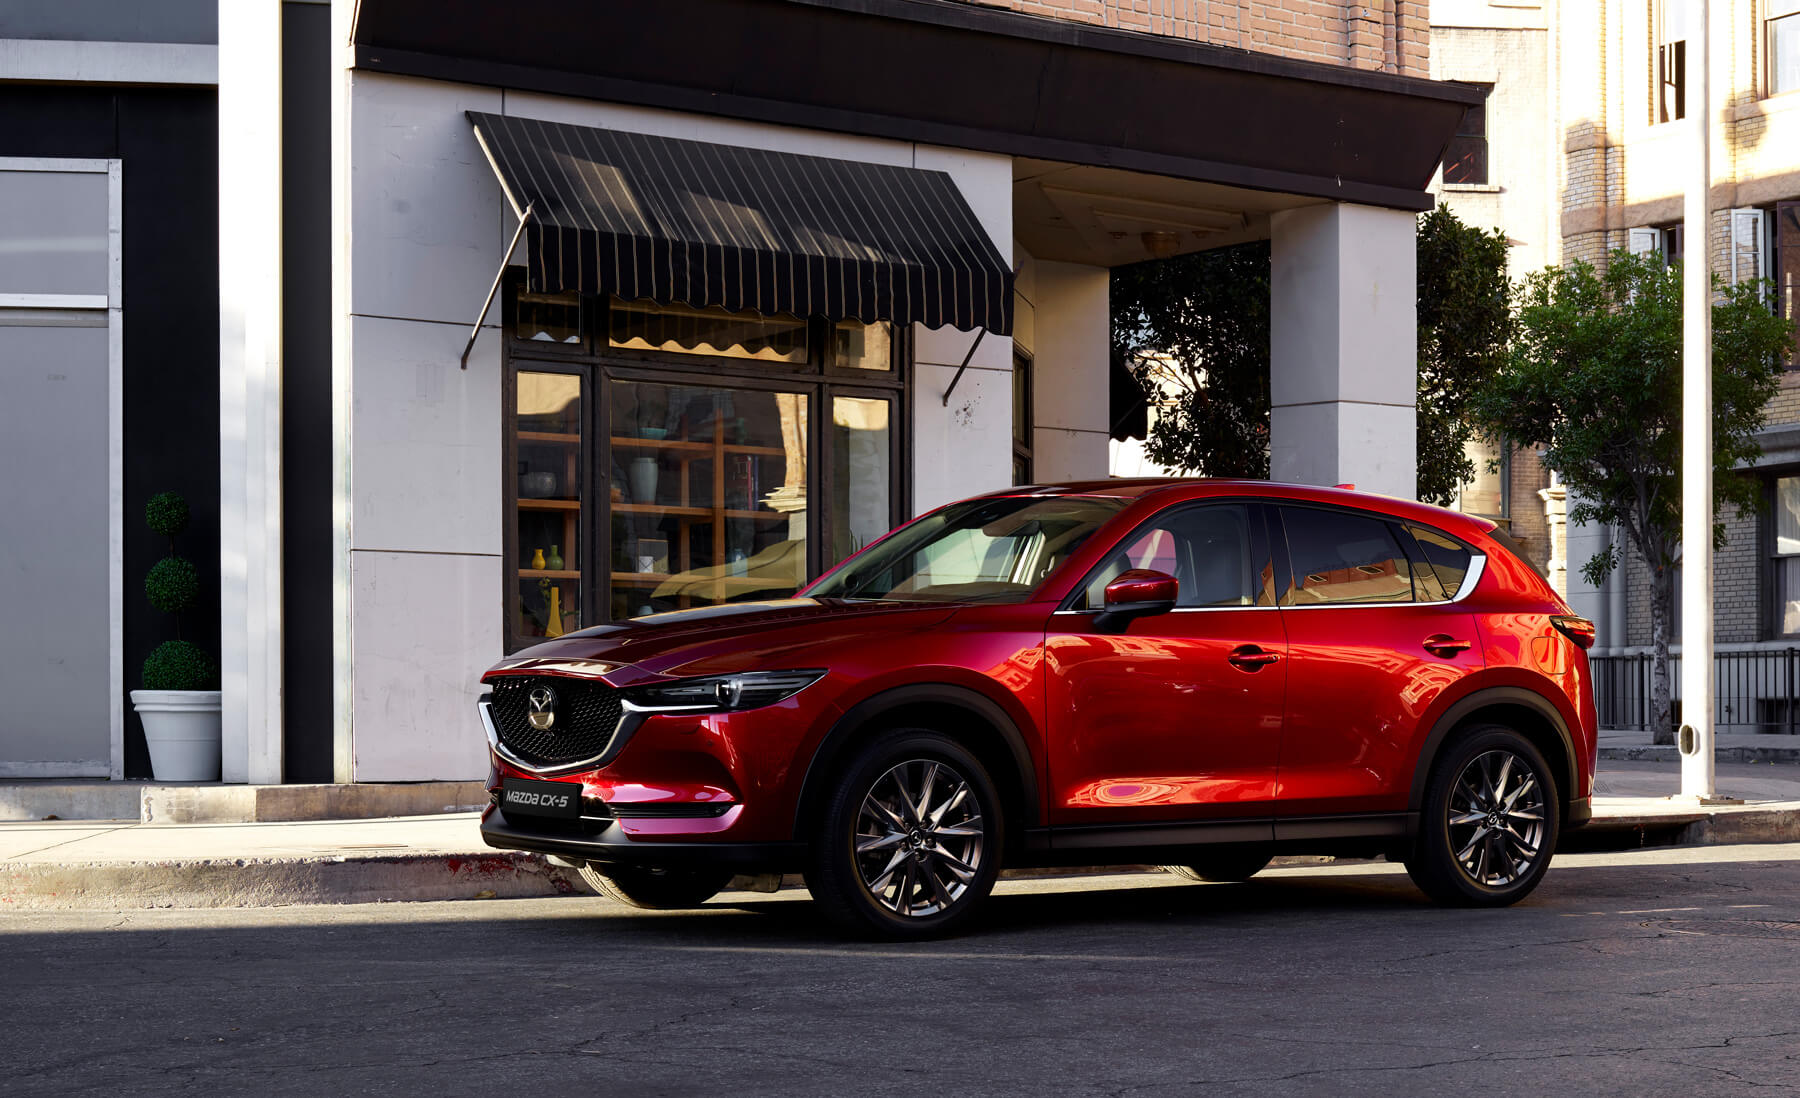 https://dealerweb.mazda.ch/wp-content/uploads/2019/08/ch_home_slider_05.jpg